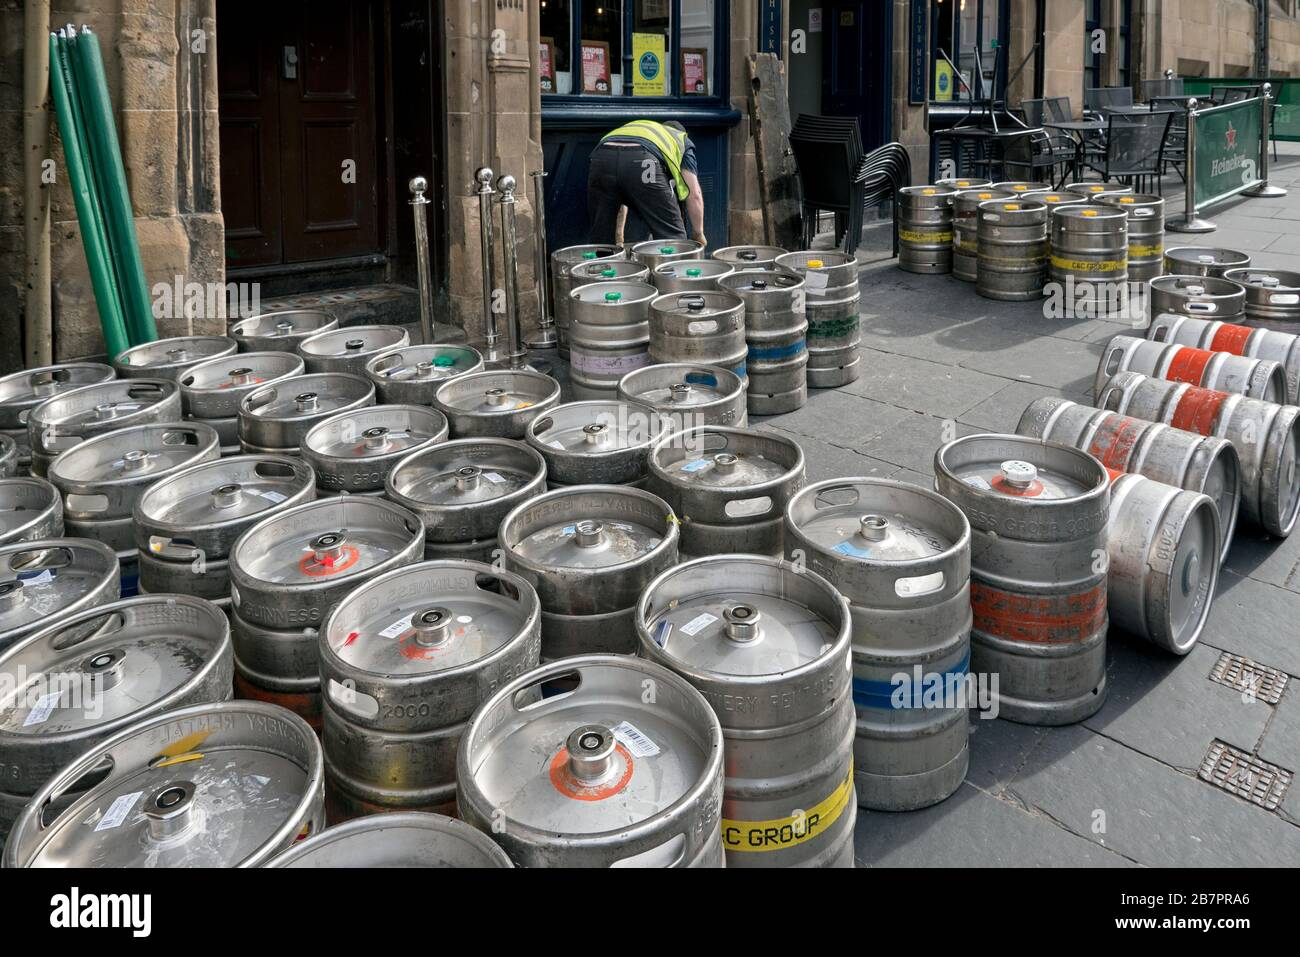 Kegs of beer being delivered to a public house on Cockburn Street, Edinburgh, Scotland, UK. Stock Photo